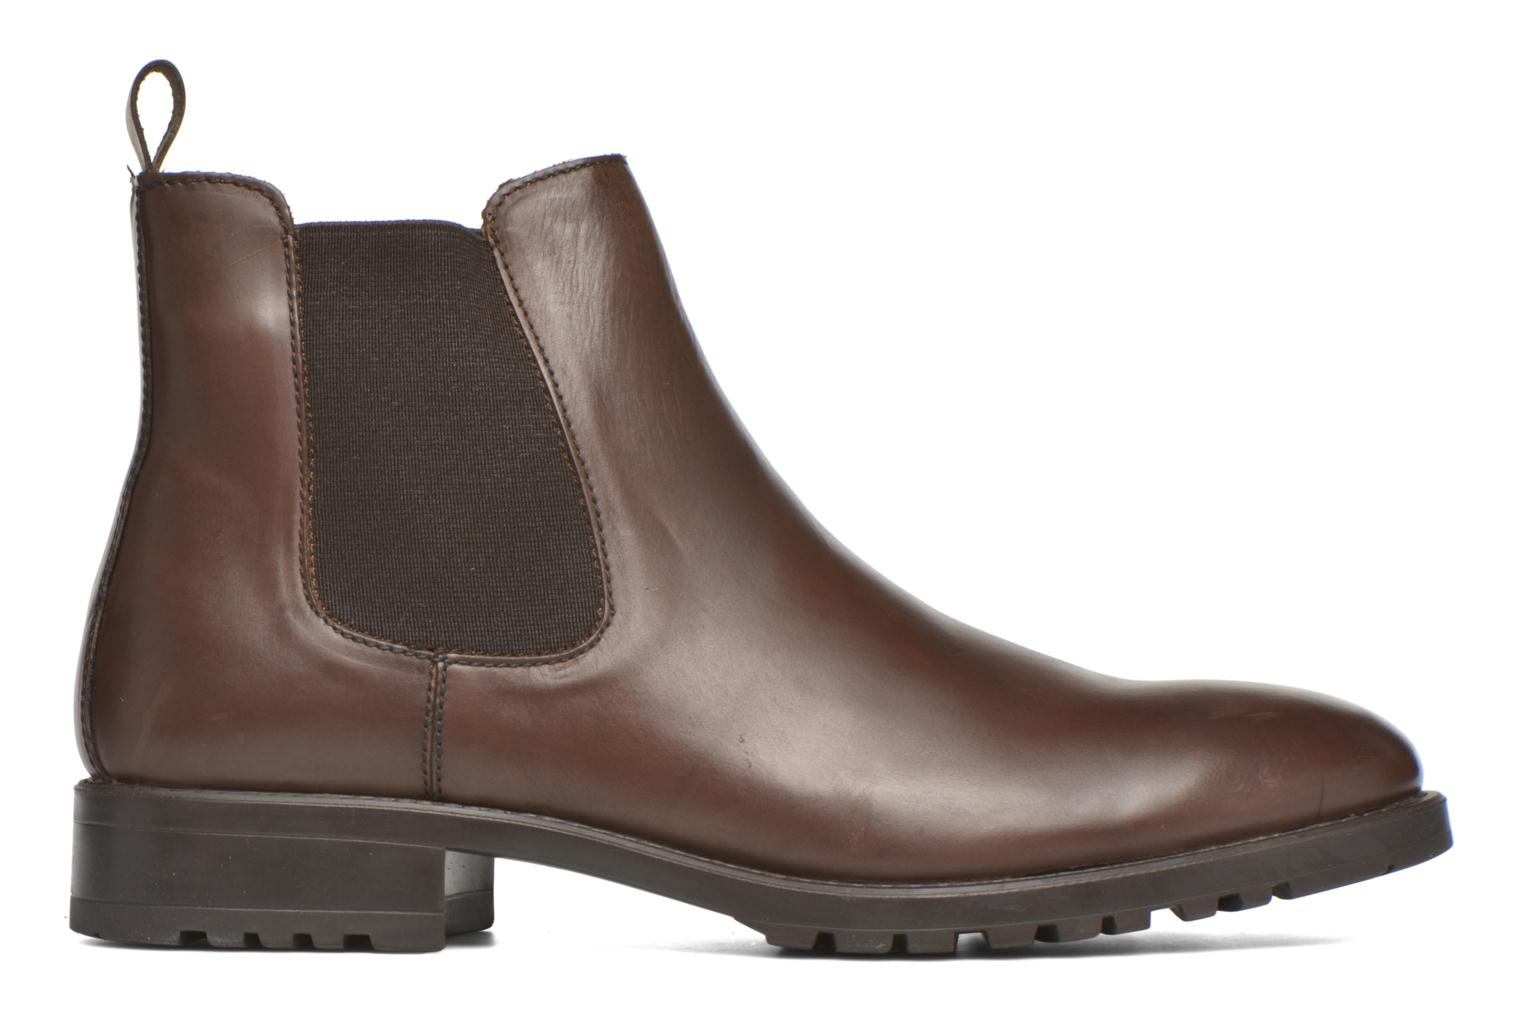 Bottines et boots Marvin&Co Ahsford Marron vue derrière